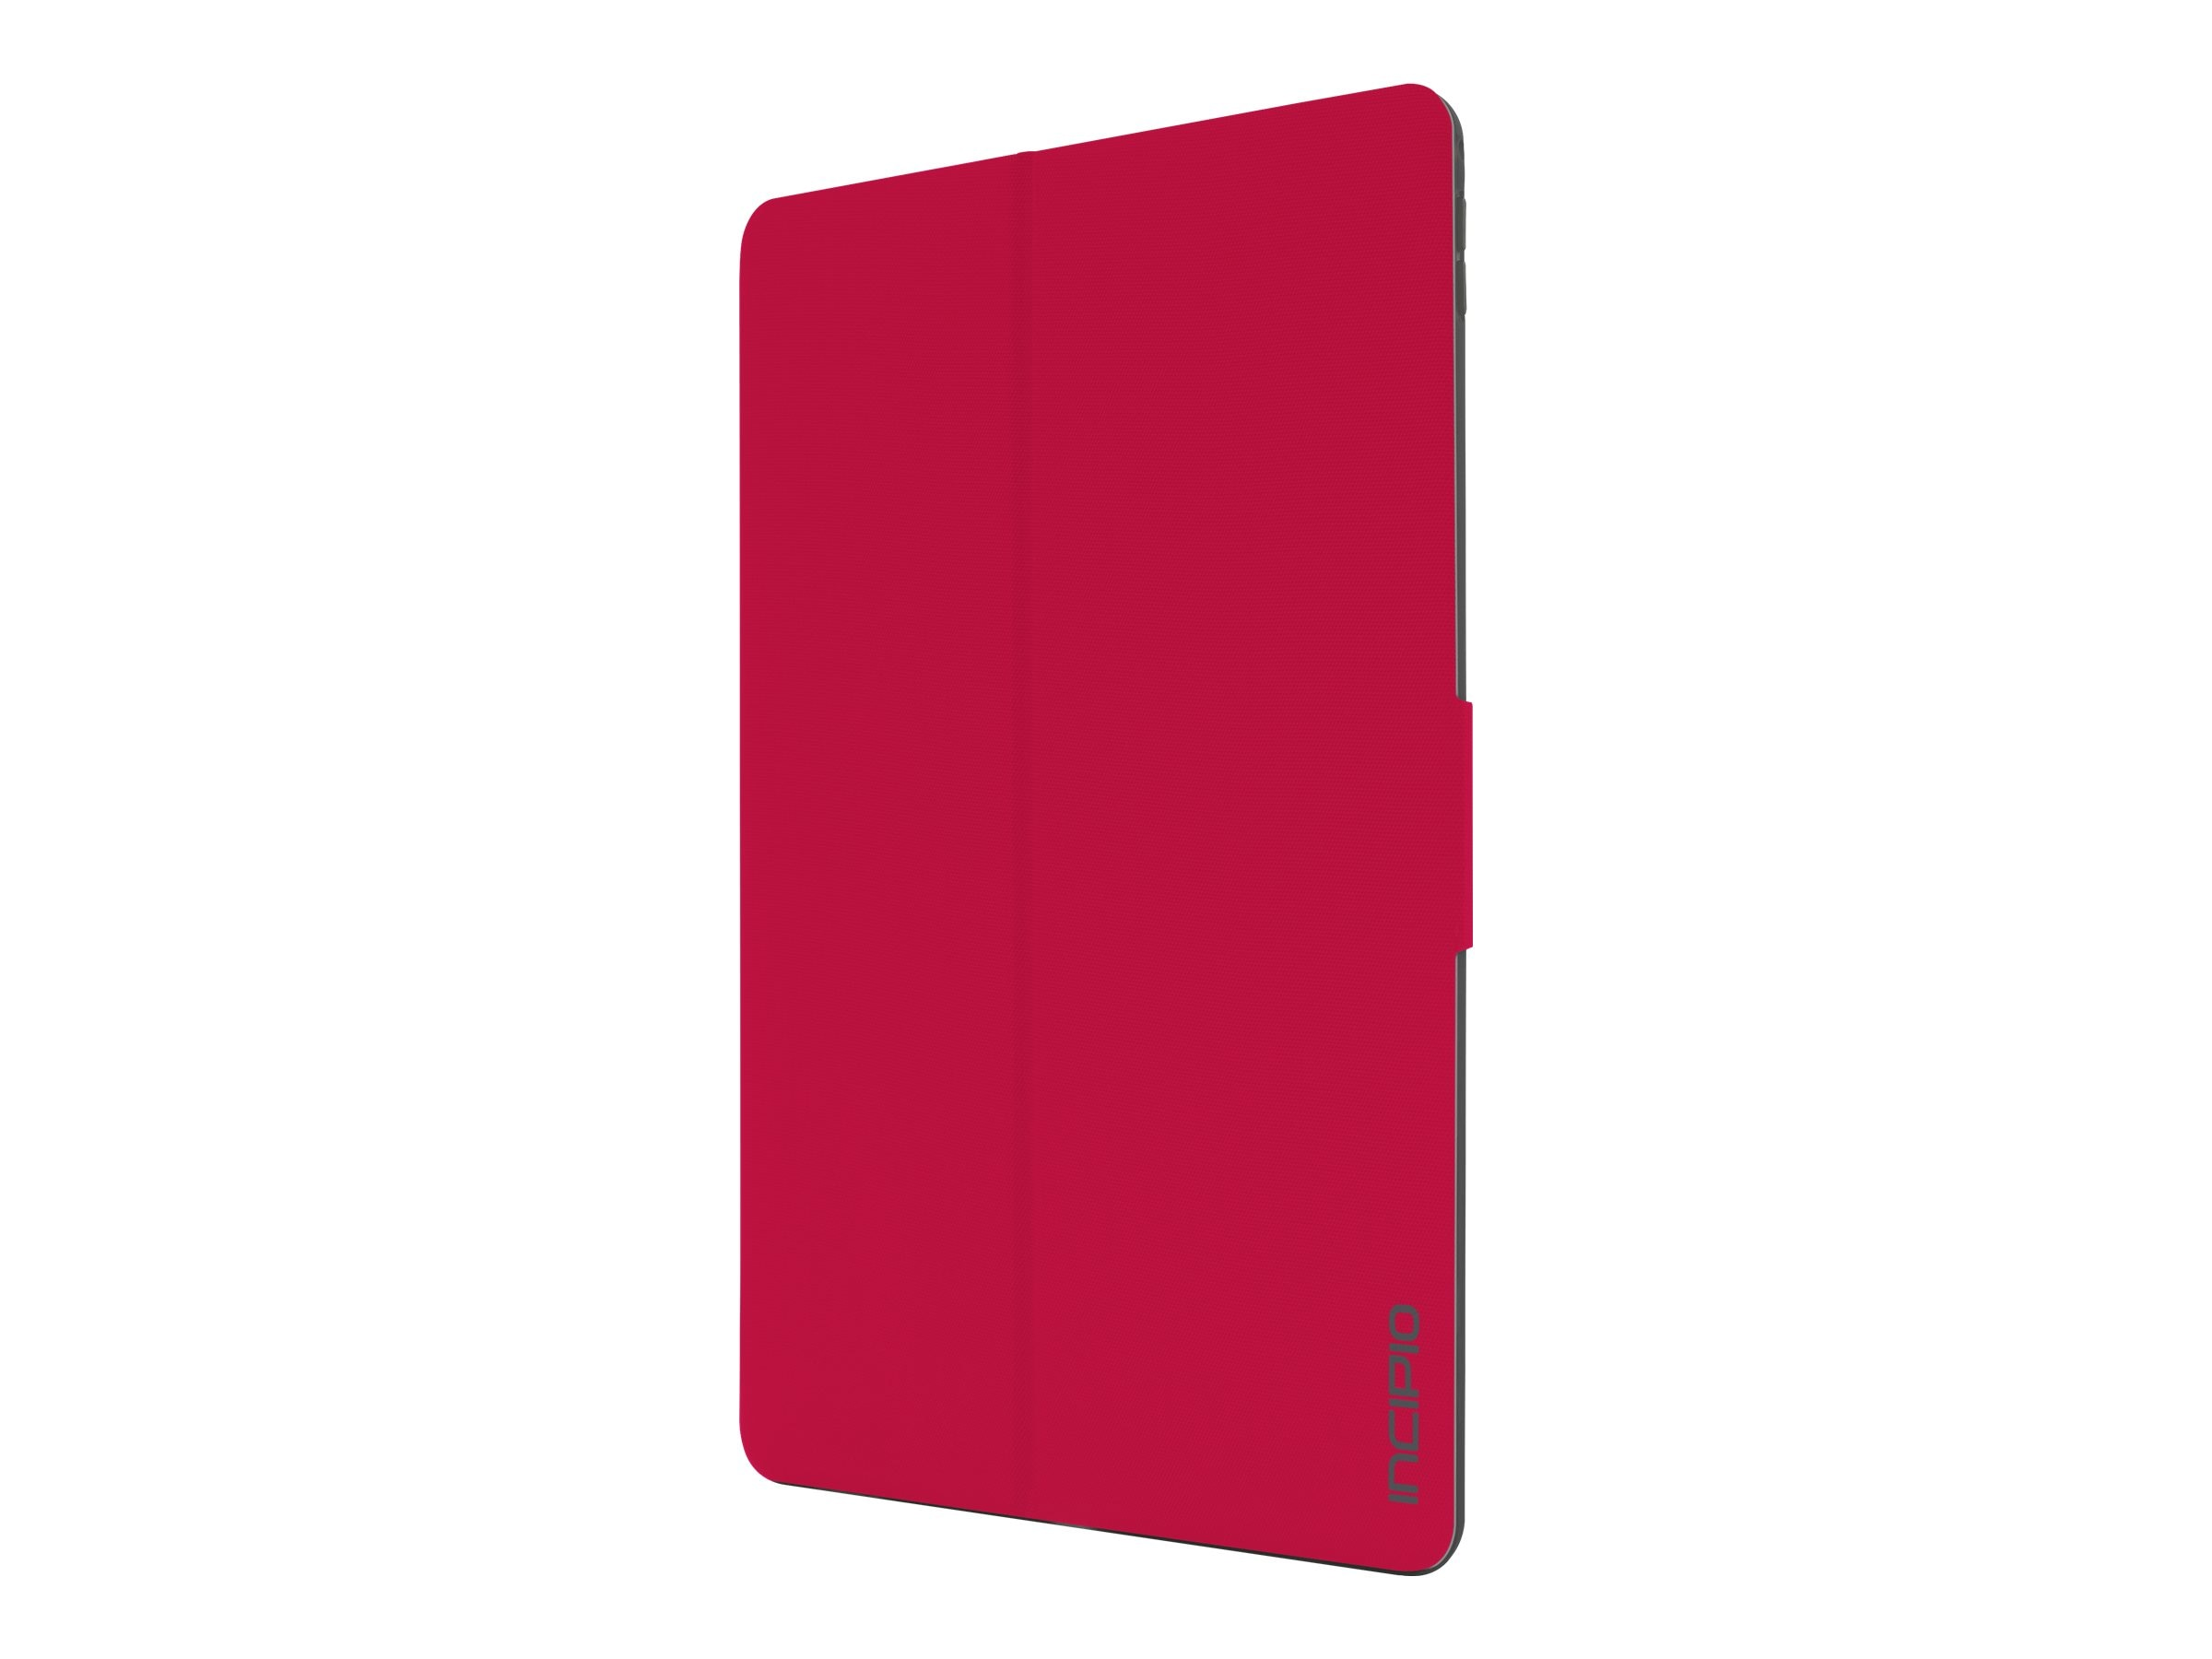 Incipio Clarion Folio Case w  Magnetic Fold Over Closure for iPad Pro, Red, IPD-286-RED, 31211741, Carrying Cases - Tablets & eReaders